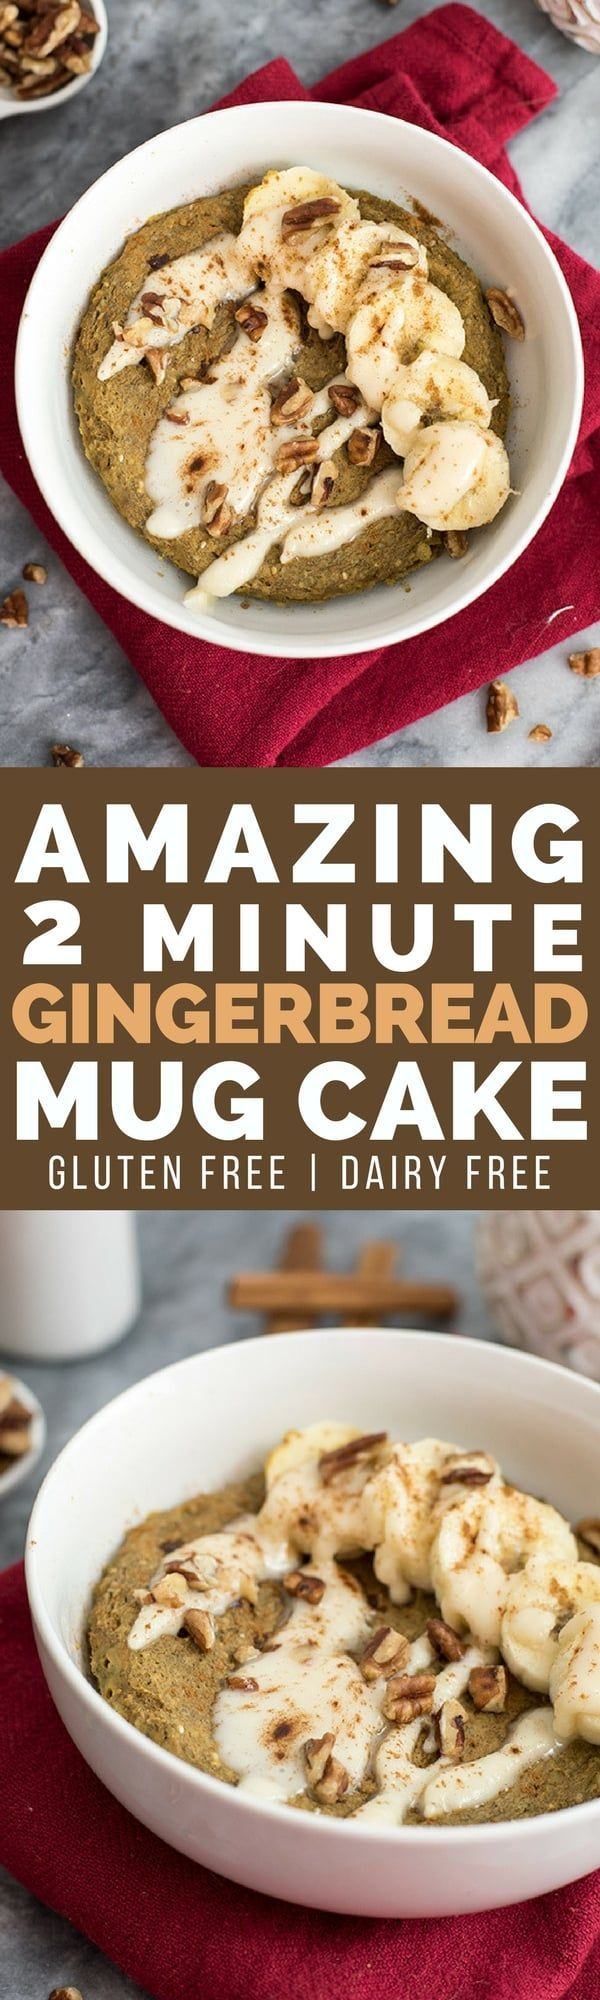 You are going to love this amazing 2 minute gingerbread ...